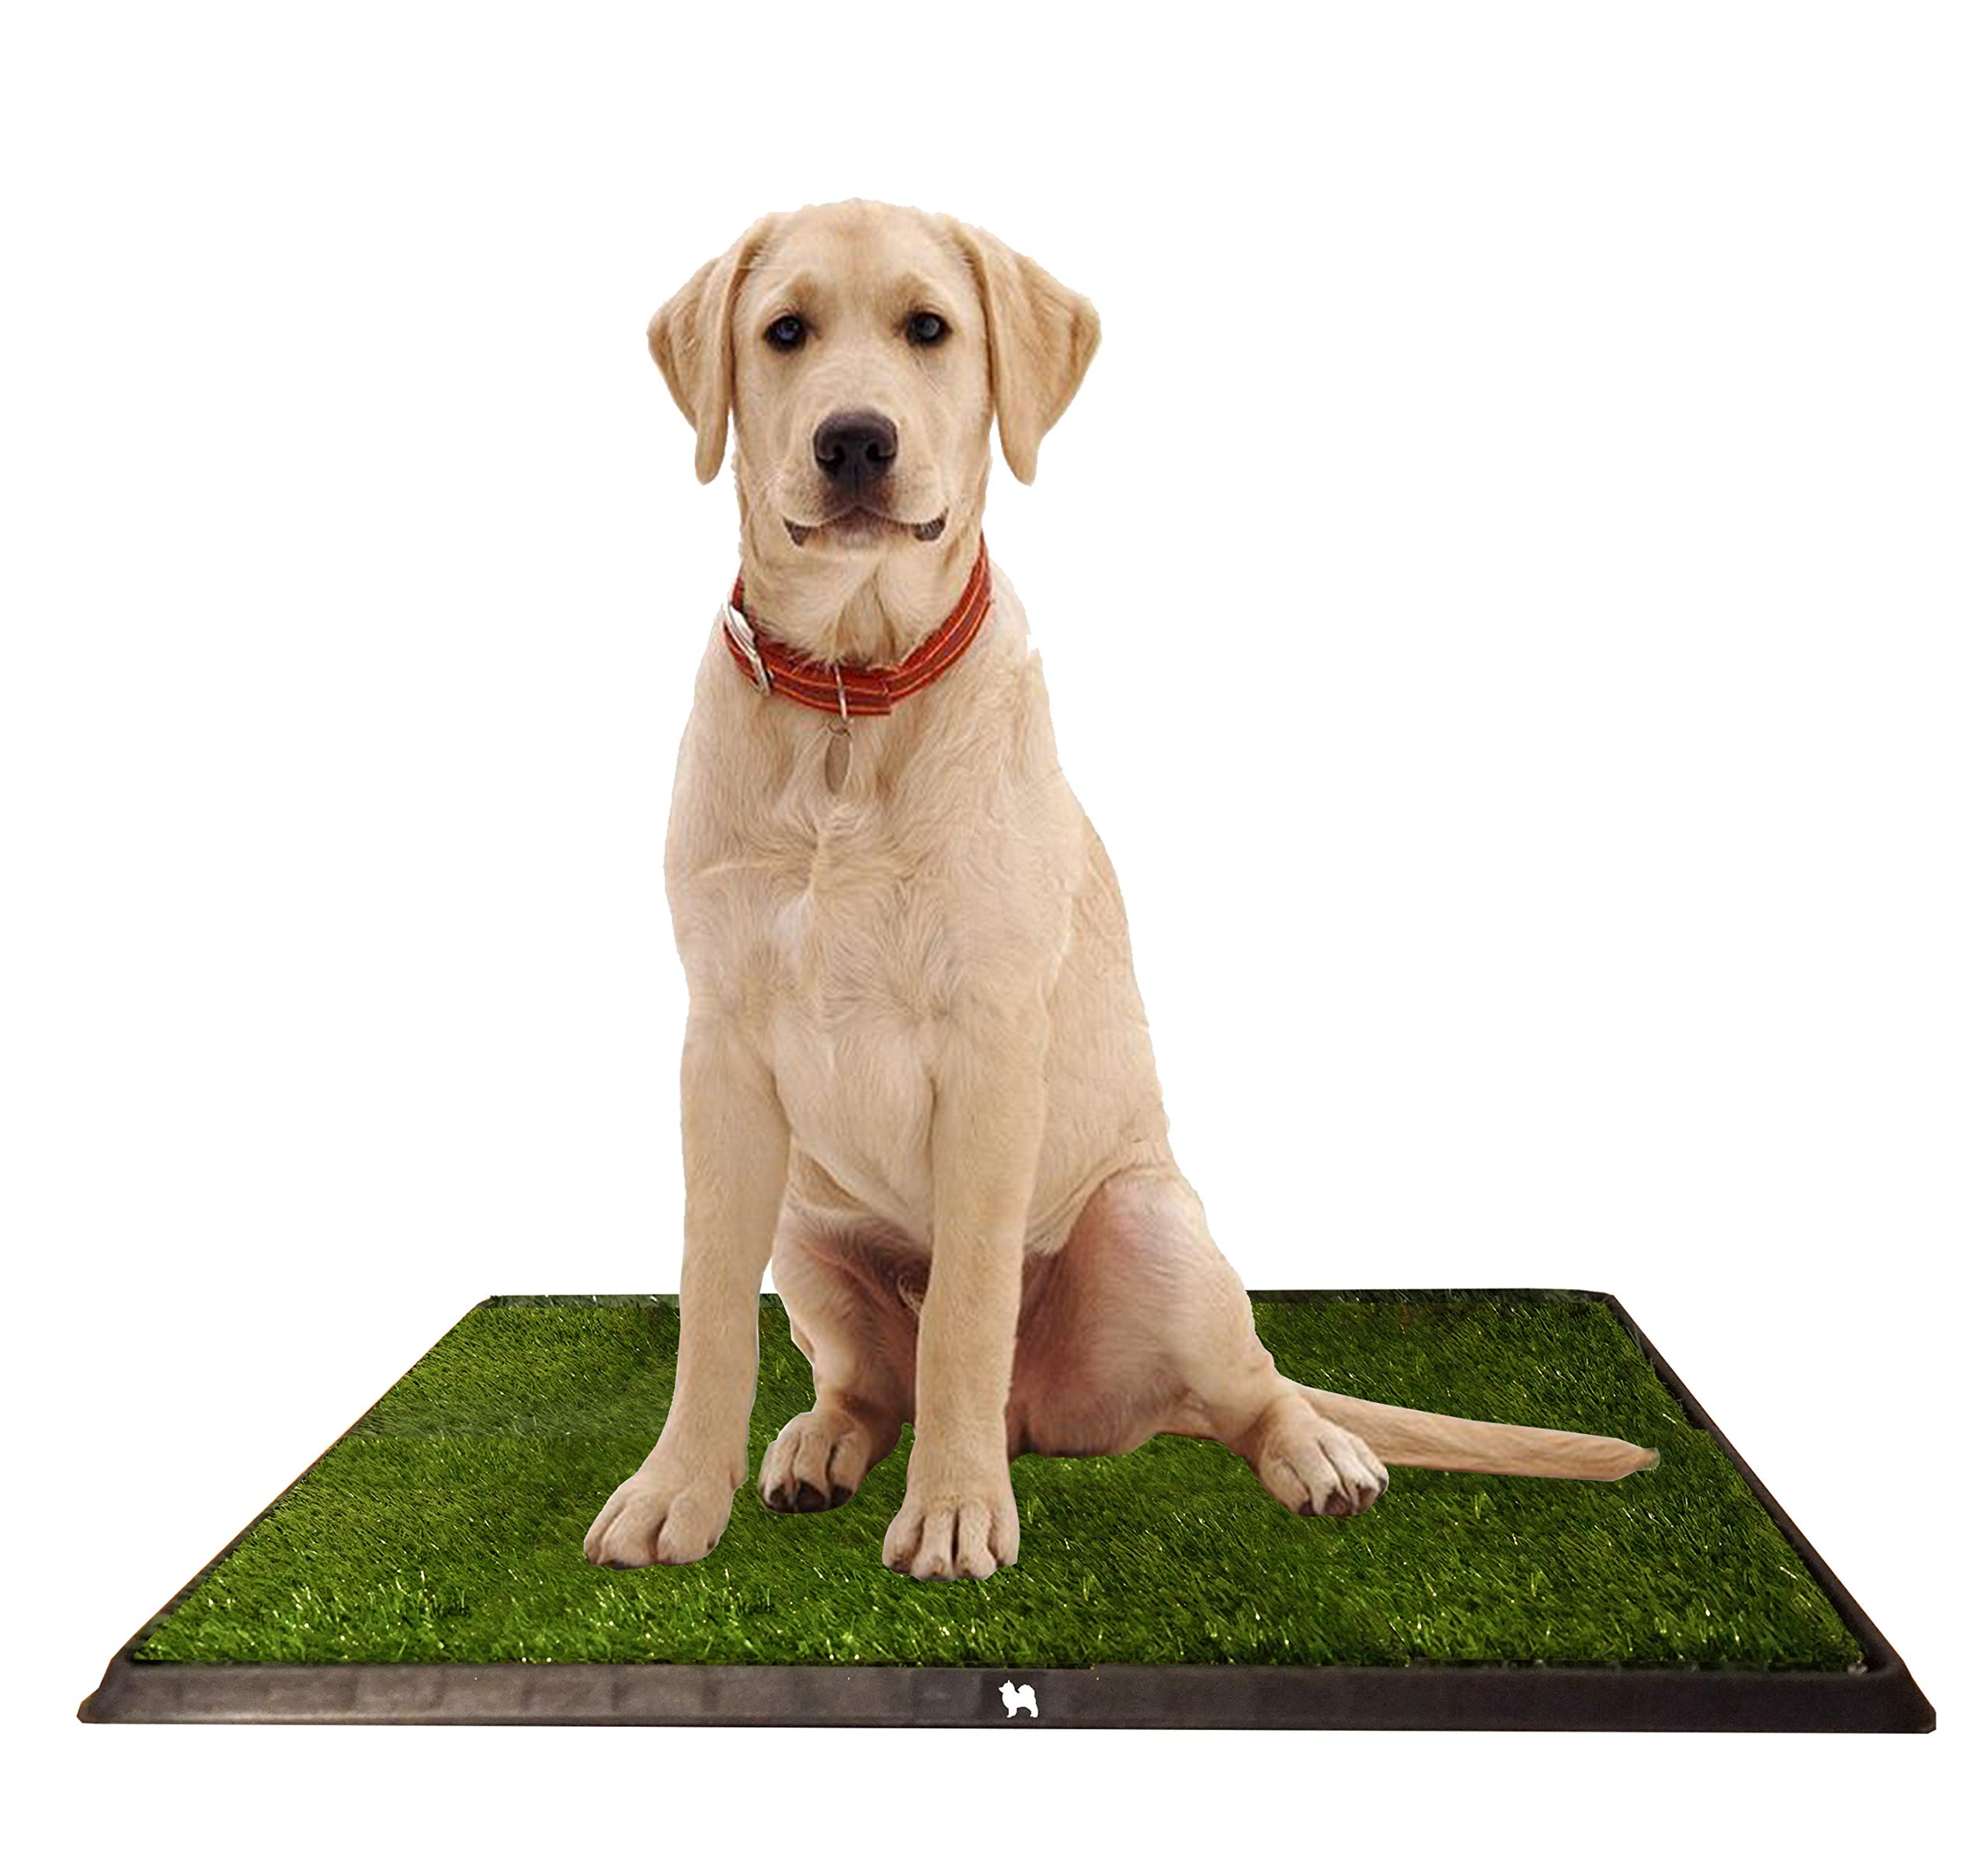 Puppy Potty Grass Toilet Trainer  Tray for Dogs and Puppies Large 20 x 25 Inch. Training Grass Pee Pad For Indoor, Outdoor Use, Porches, Apartments and Houses  Grass Turf Mat